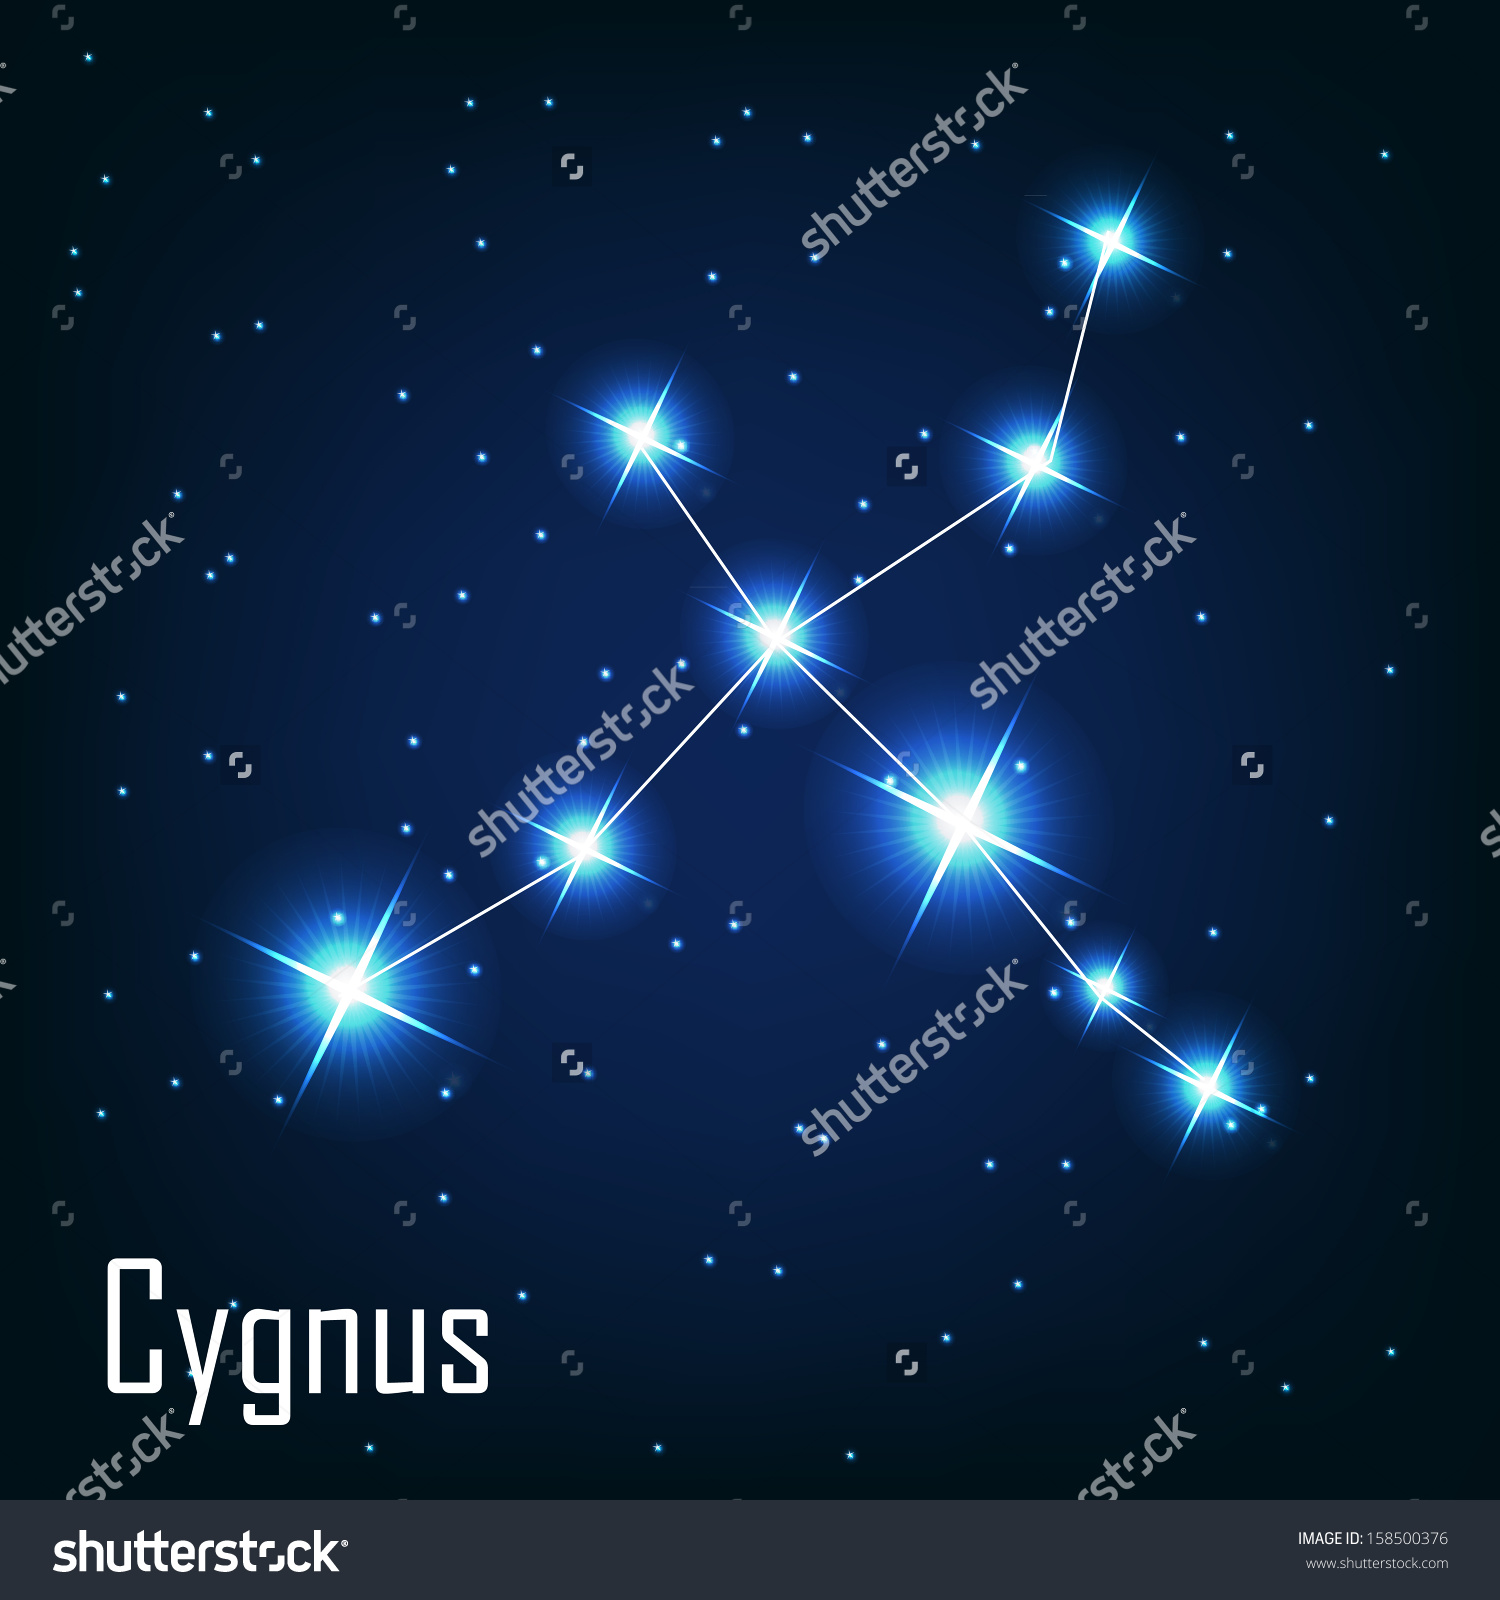 Constellation Cygnus Star Night Sky Vector Stock Vector 158500376.